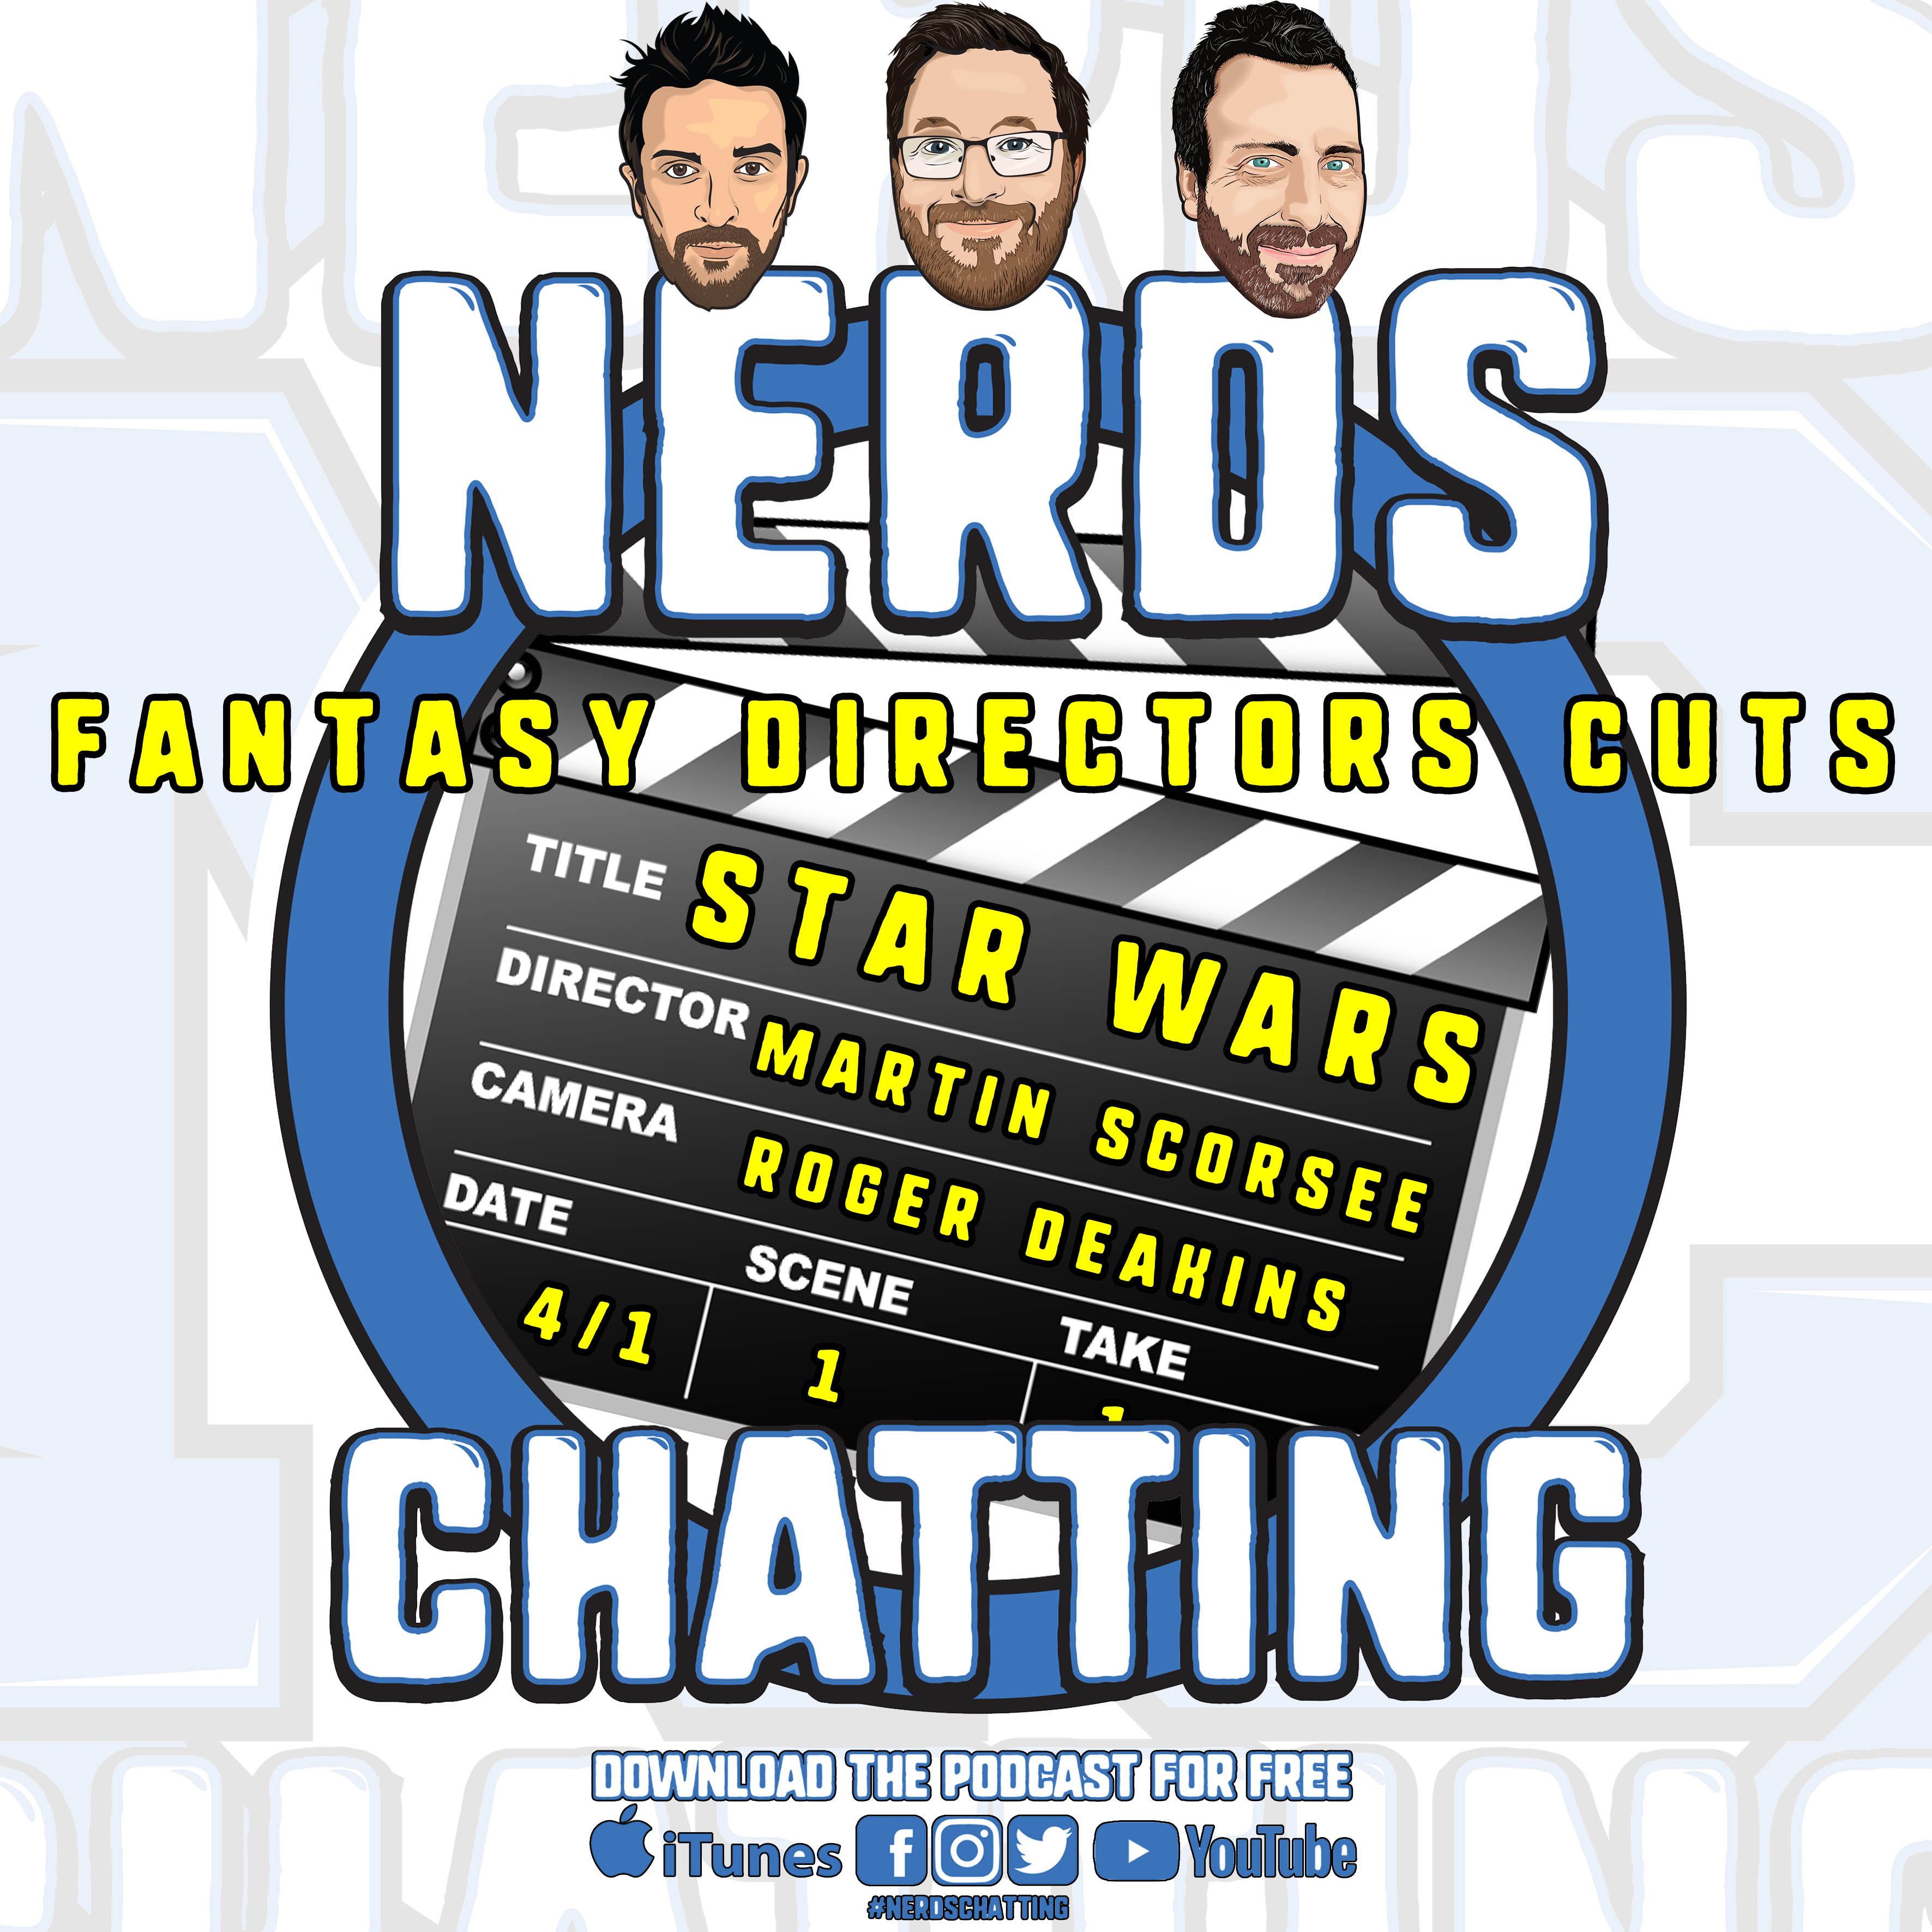 nerdschatting fantasy directors cuts